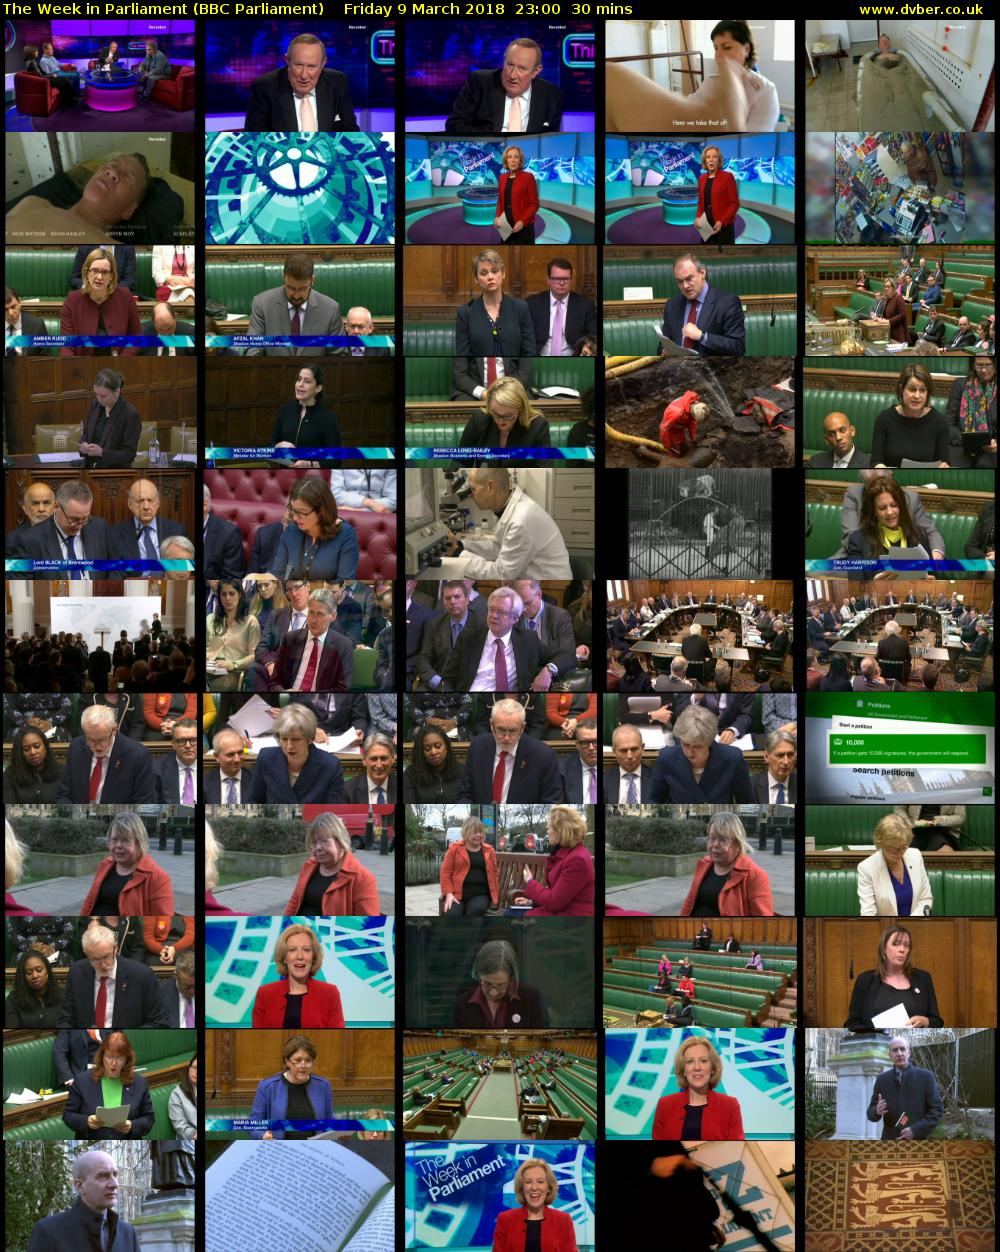 The Week in Parliament (BBC Parliament) Friday 9 March 2018 23:00 - 23:30